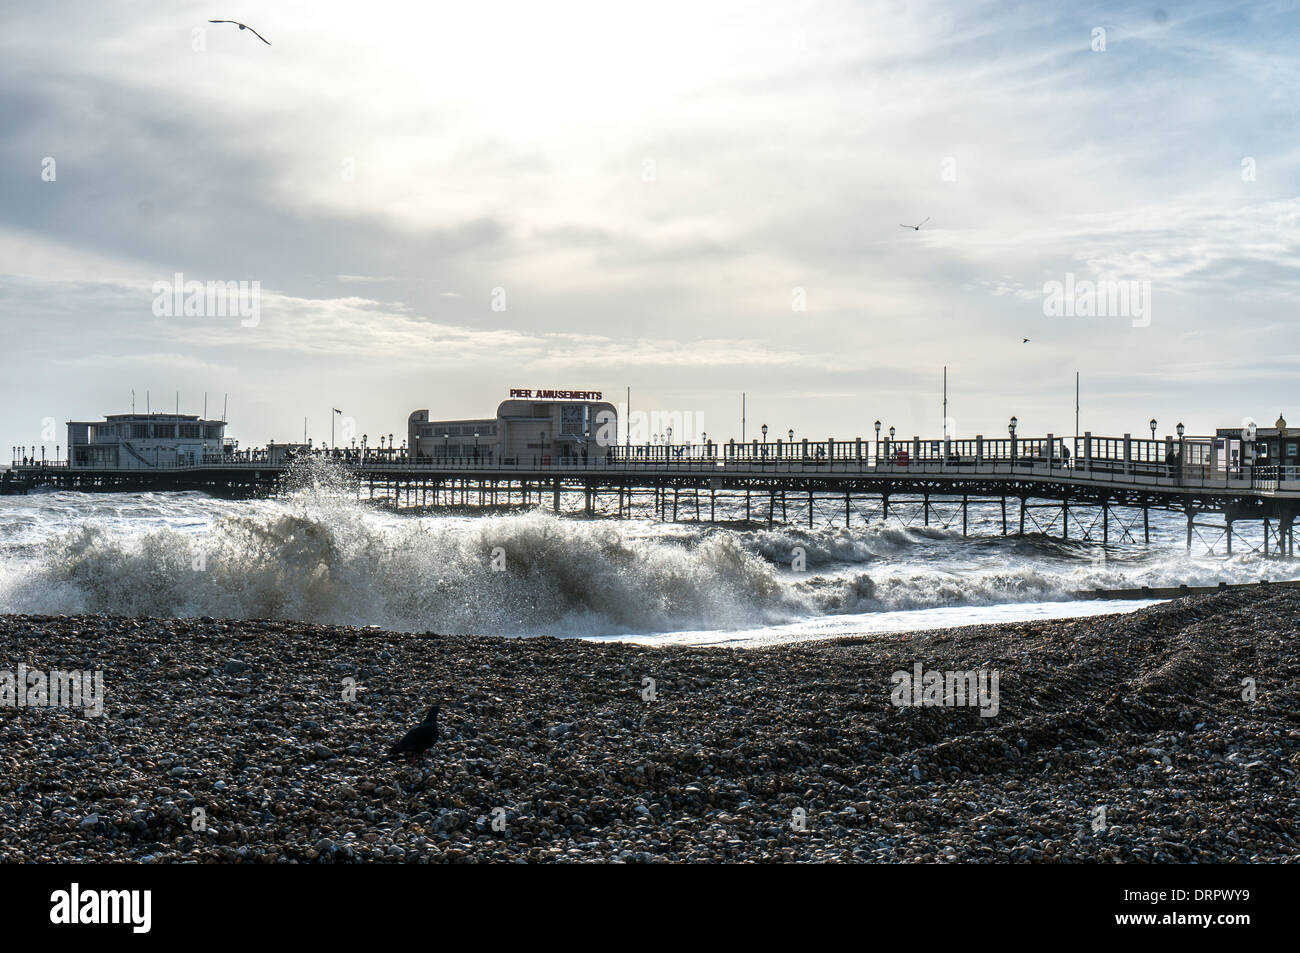 The pier with a deserted beach and stormy sea in winter, Worthing, West Sussex, England, UK. Stock Photo